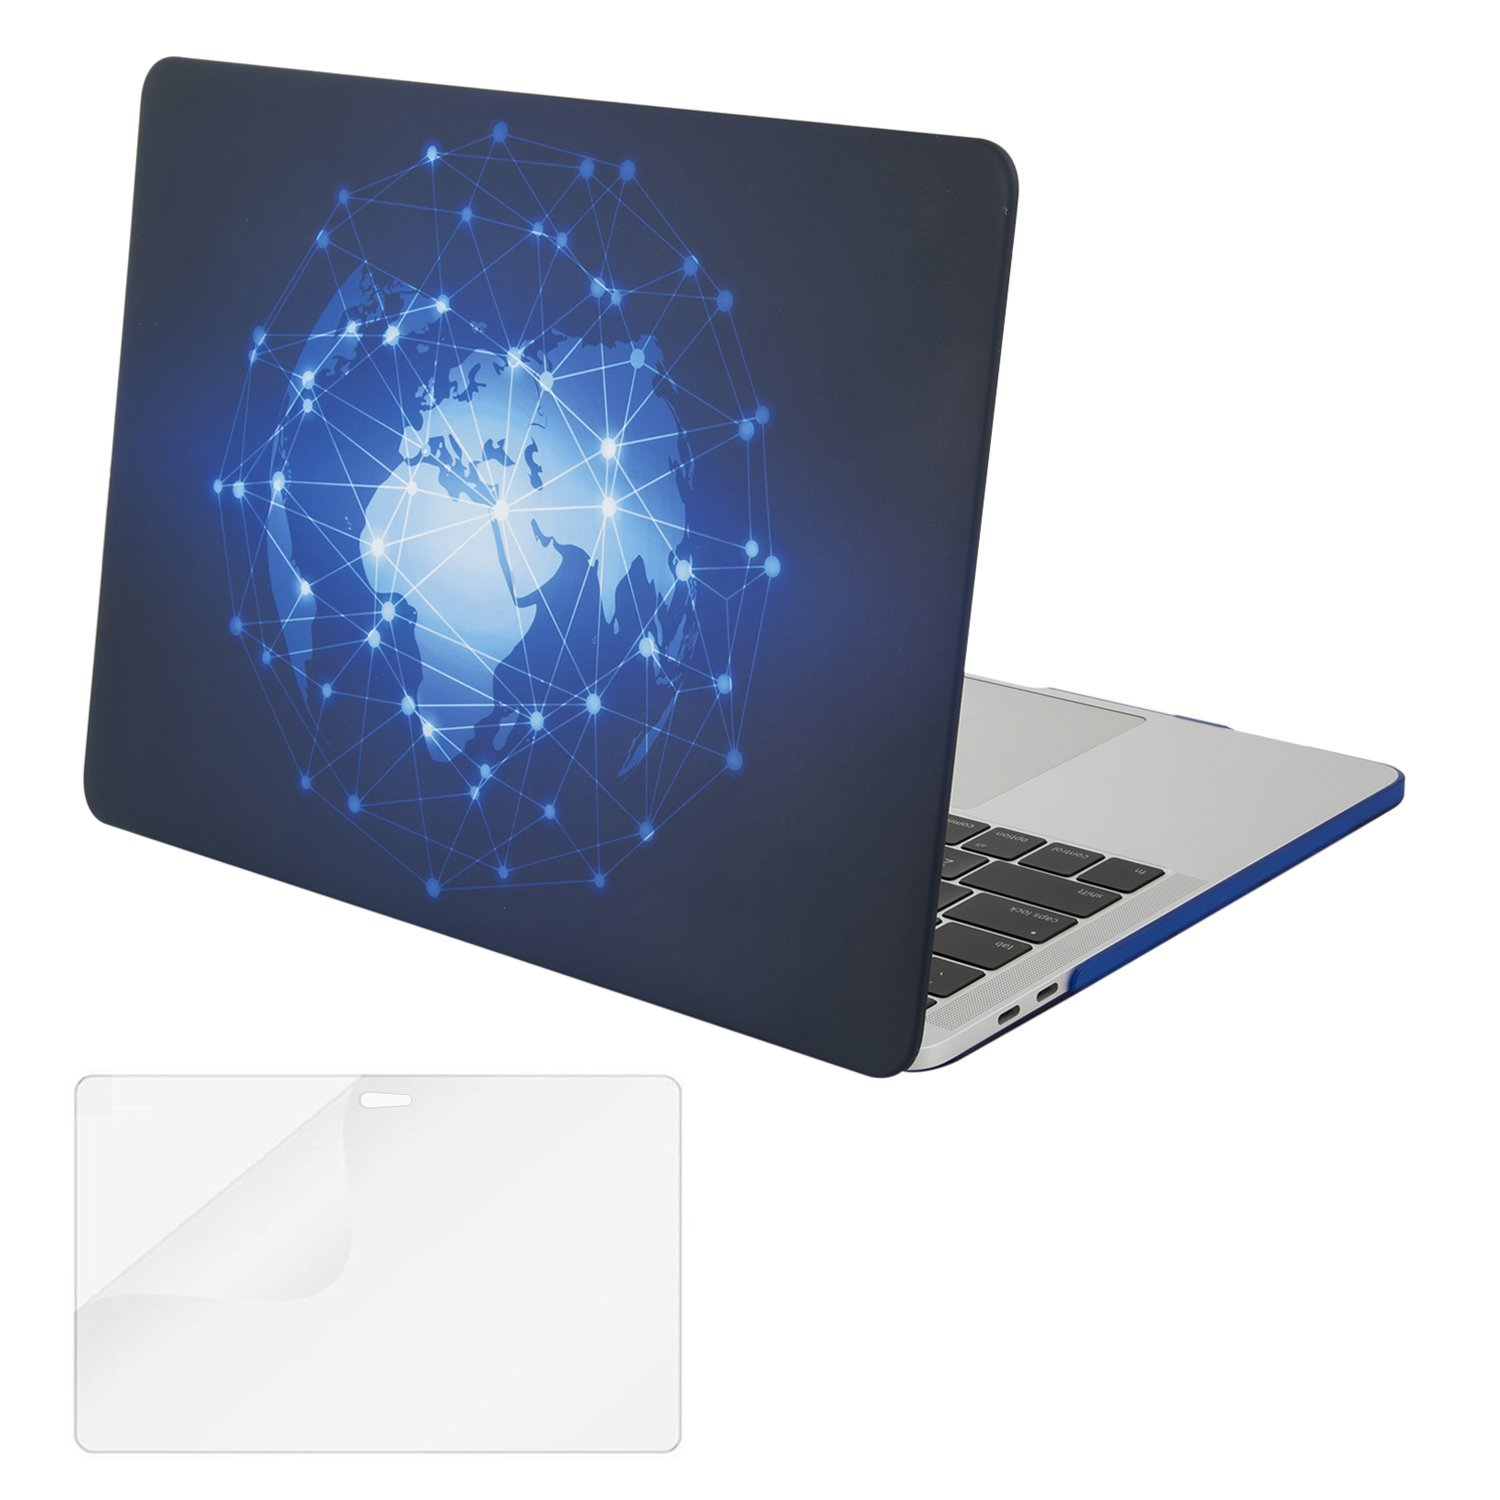 Mosiso Plastic Hard Case with Screen Protector for Newest Macbook Pro 13 Inch with Retina Display No CD-ROM (A1706/A1708, Oct 2016), Constellation